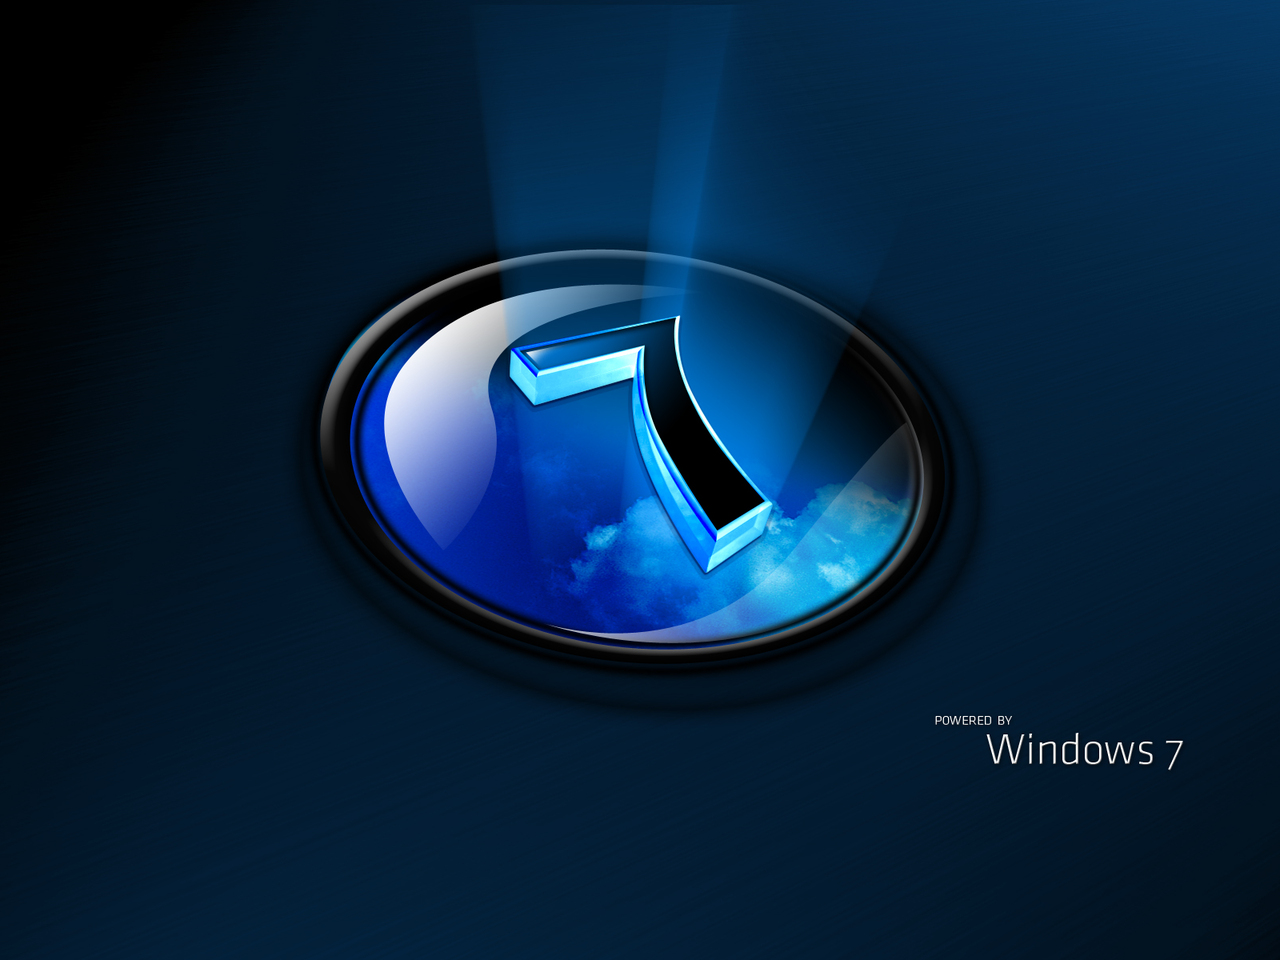 Hd live wallpaper for pc wallpapersafari - Hd wallpapers for pc windows ...